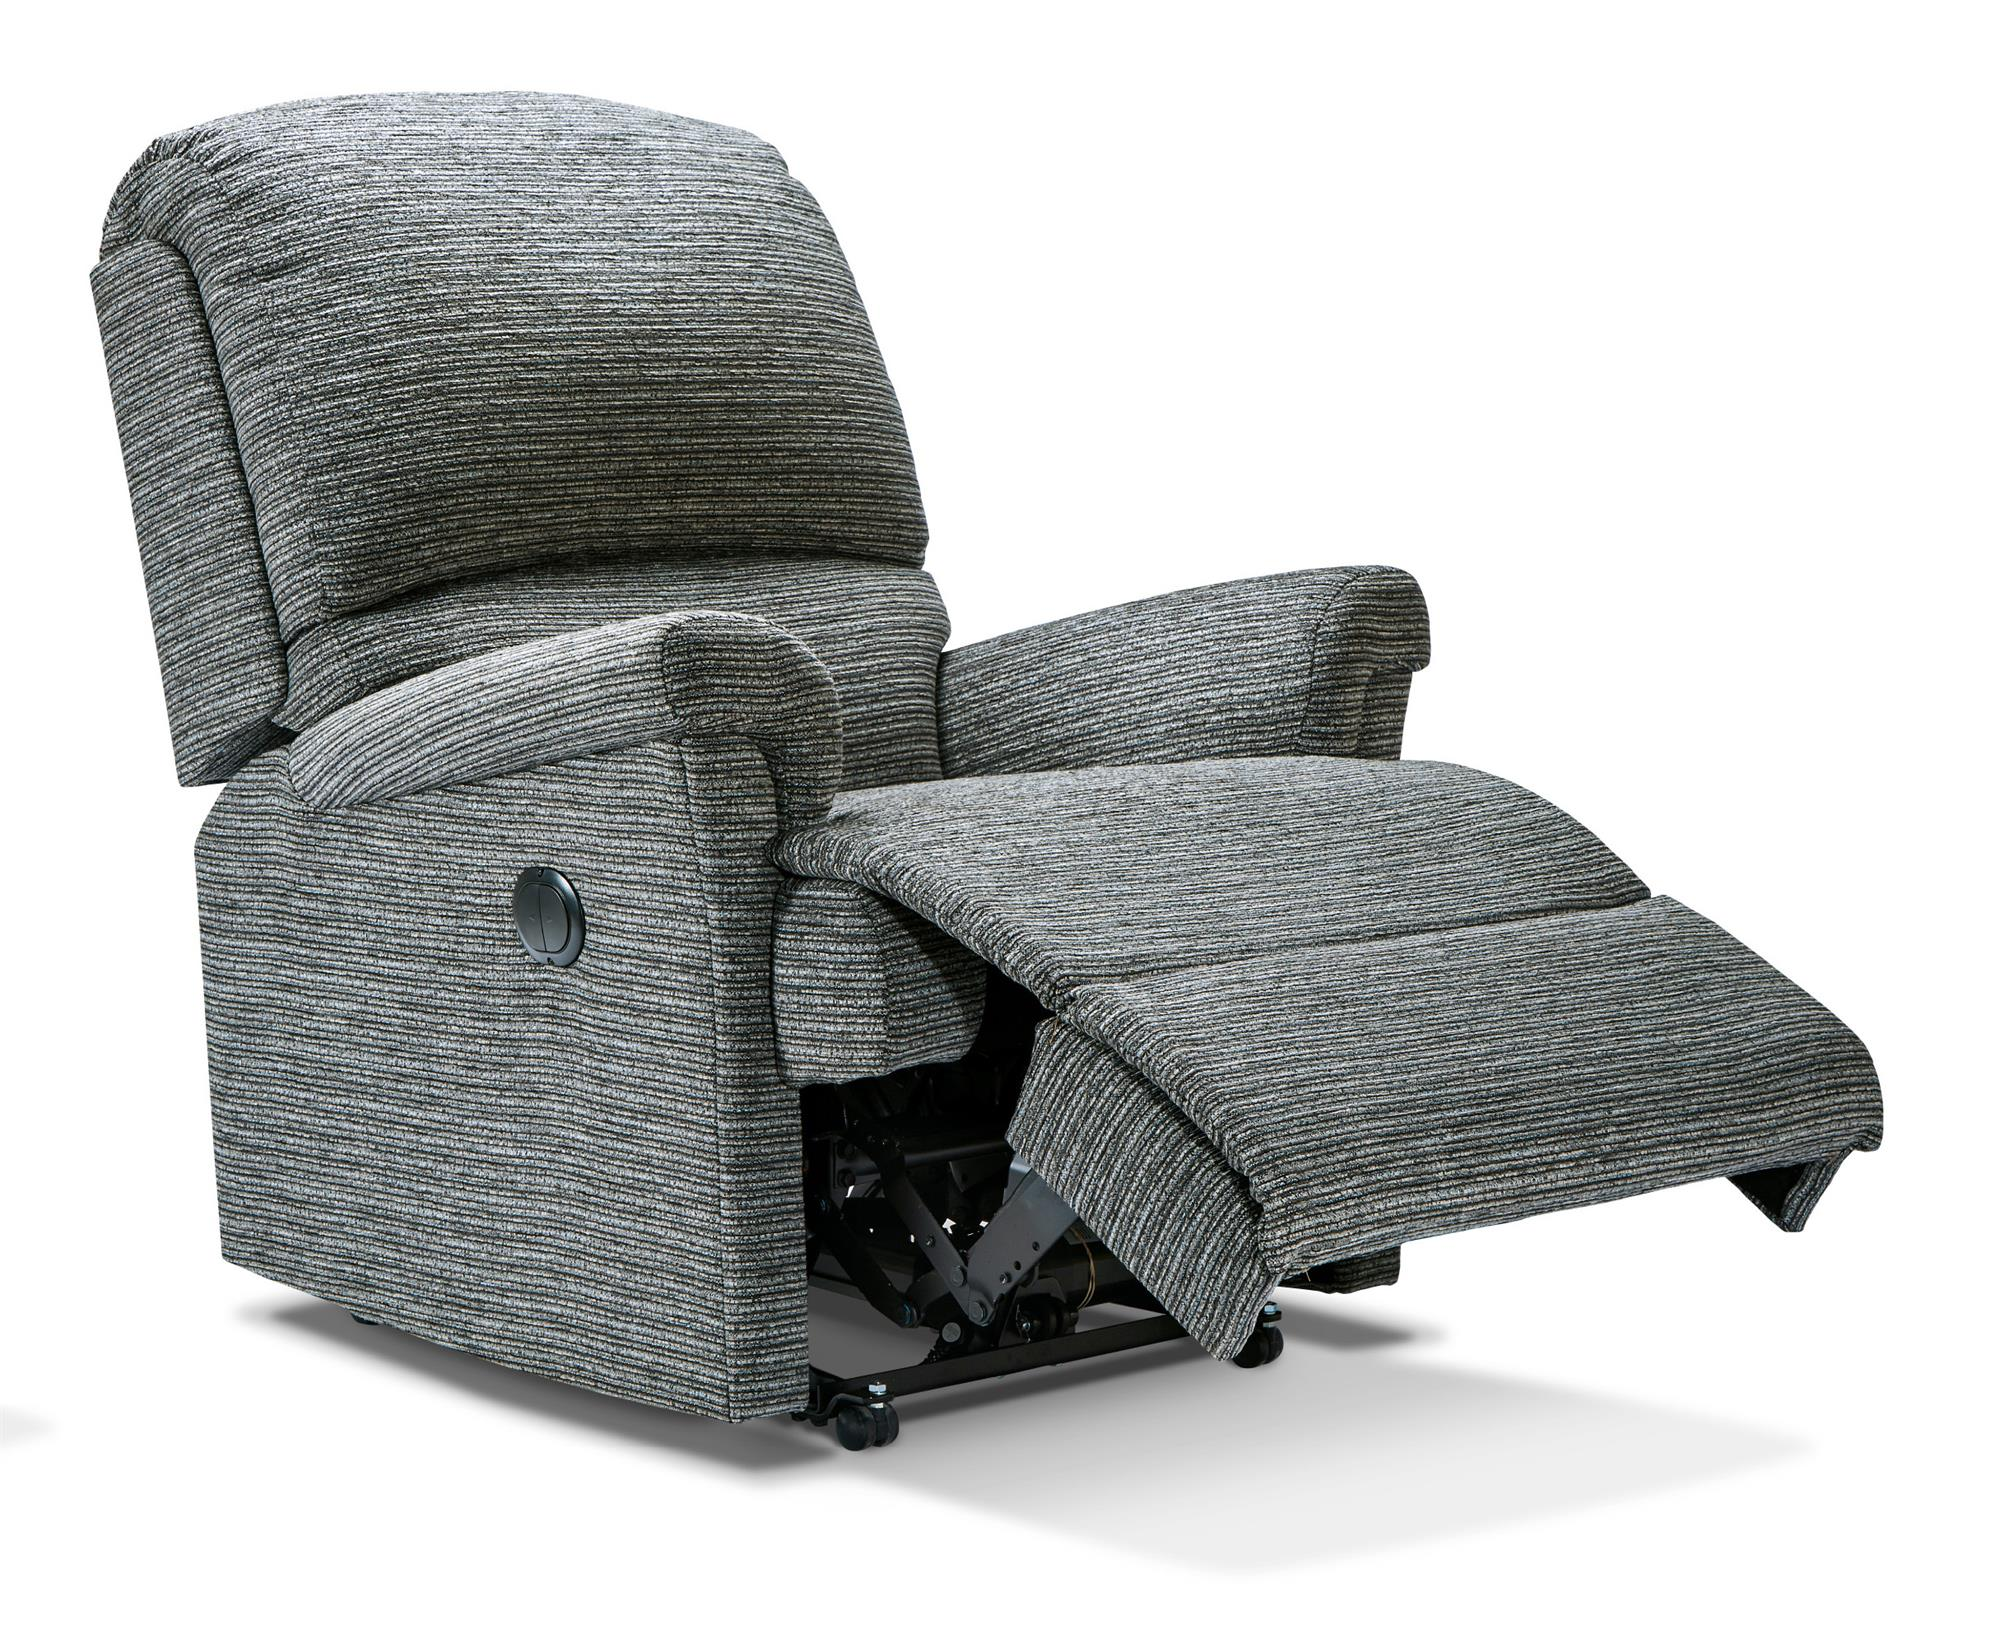 Nevada Powered Recliner Chair - by Sherborne